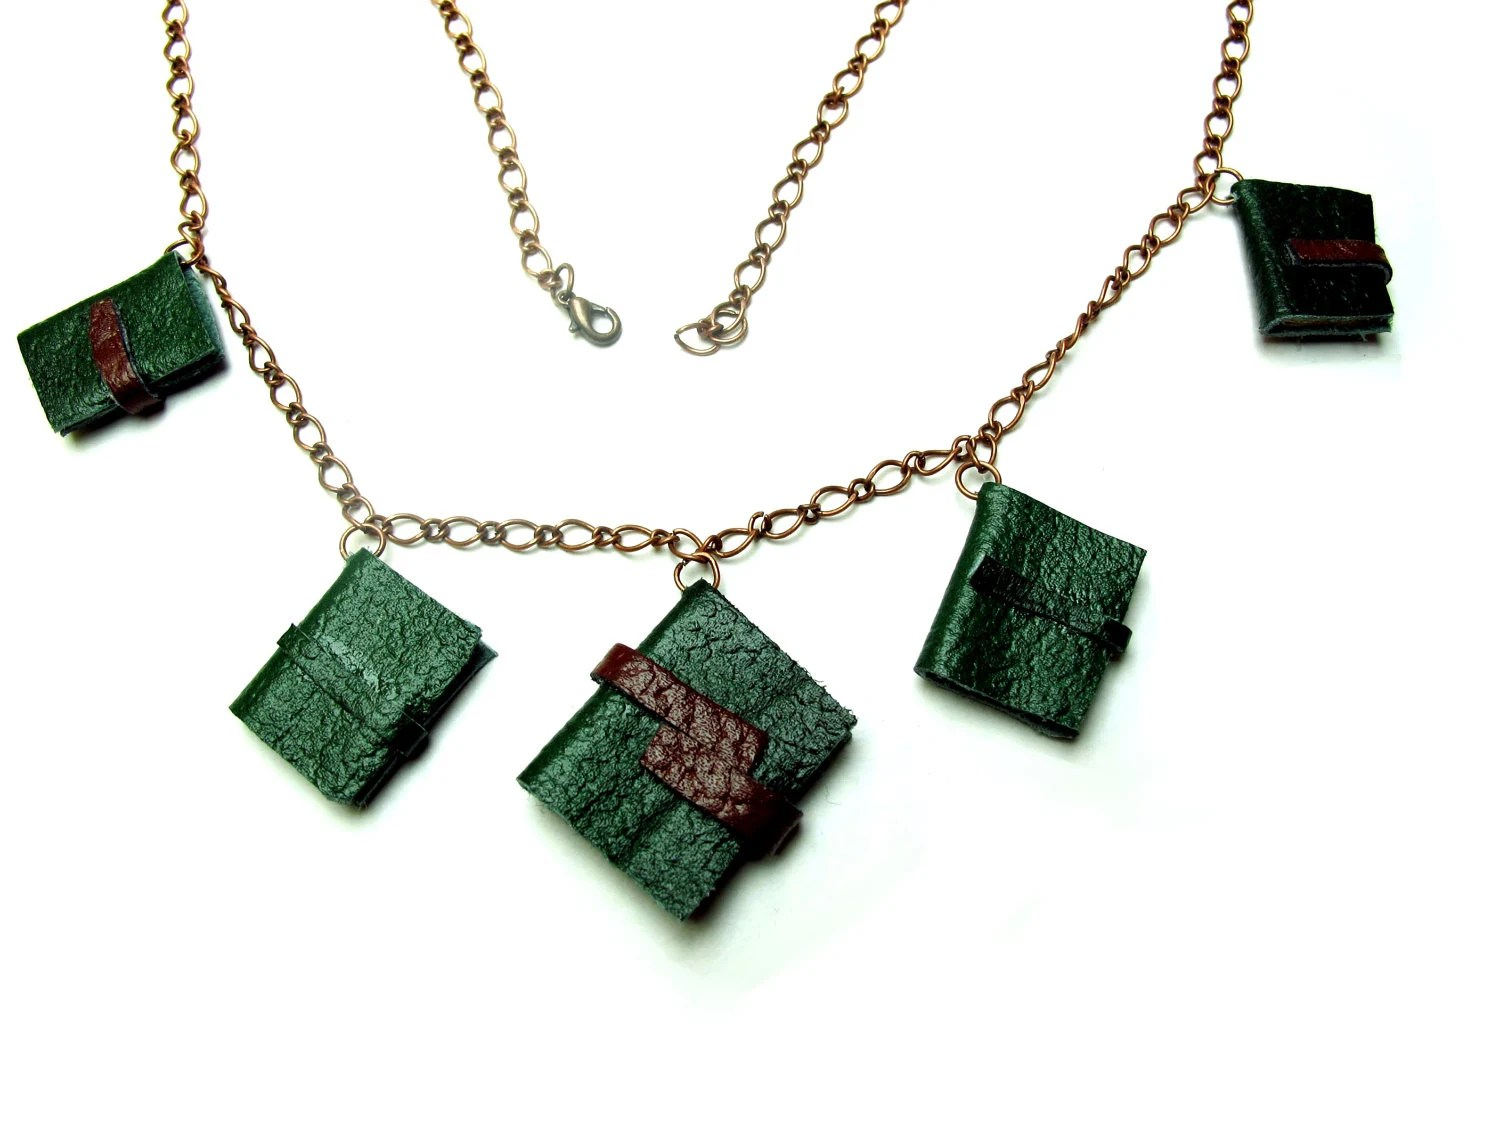 Mini book necklace, five dark green decorative leather journals on antiqued brass chain.